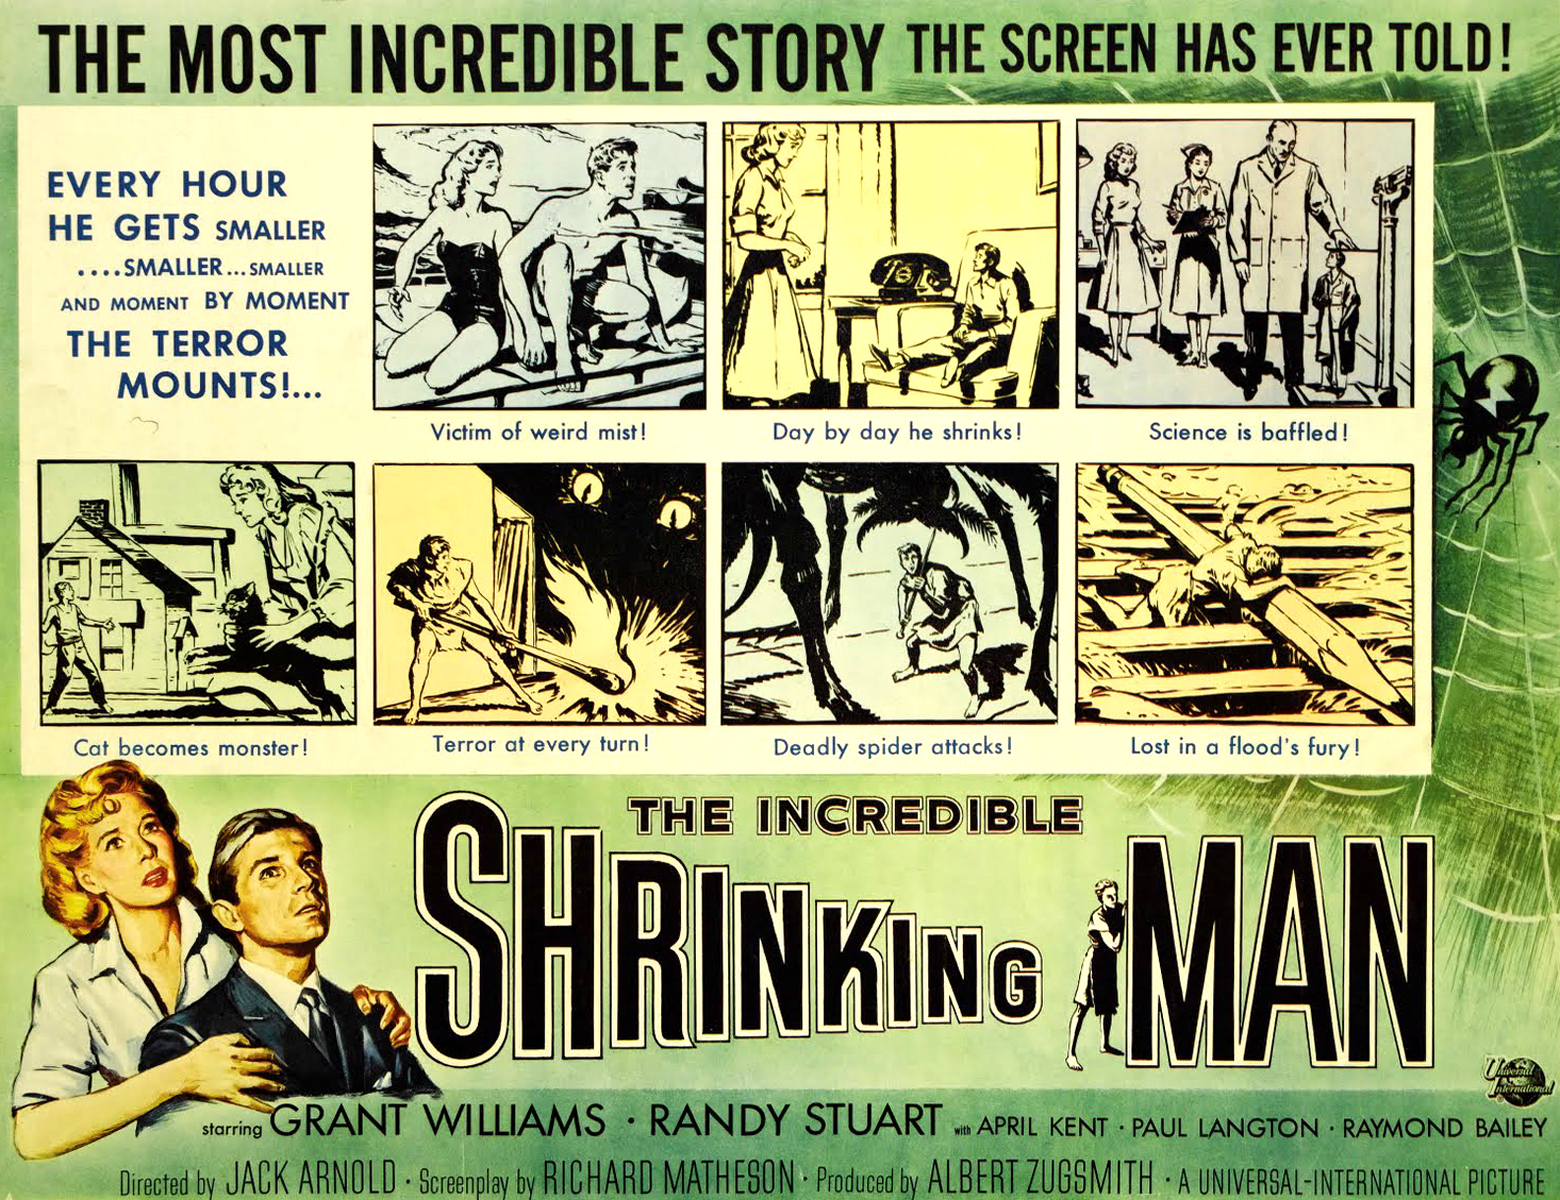 MOVIE POSTERS: THE INCREDIBLE SHRINKING MAN (1957)